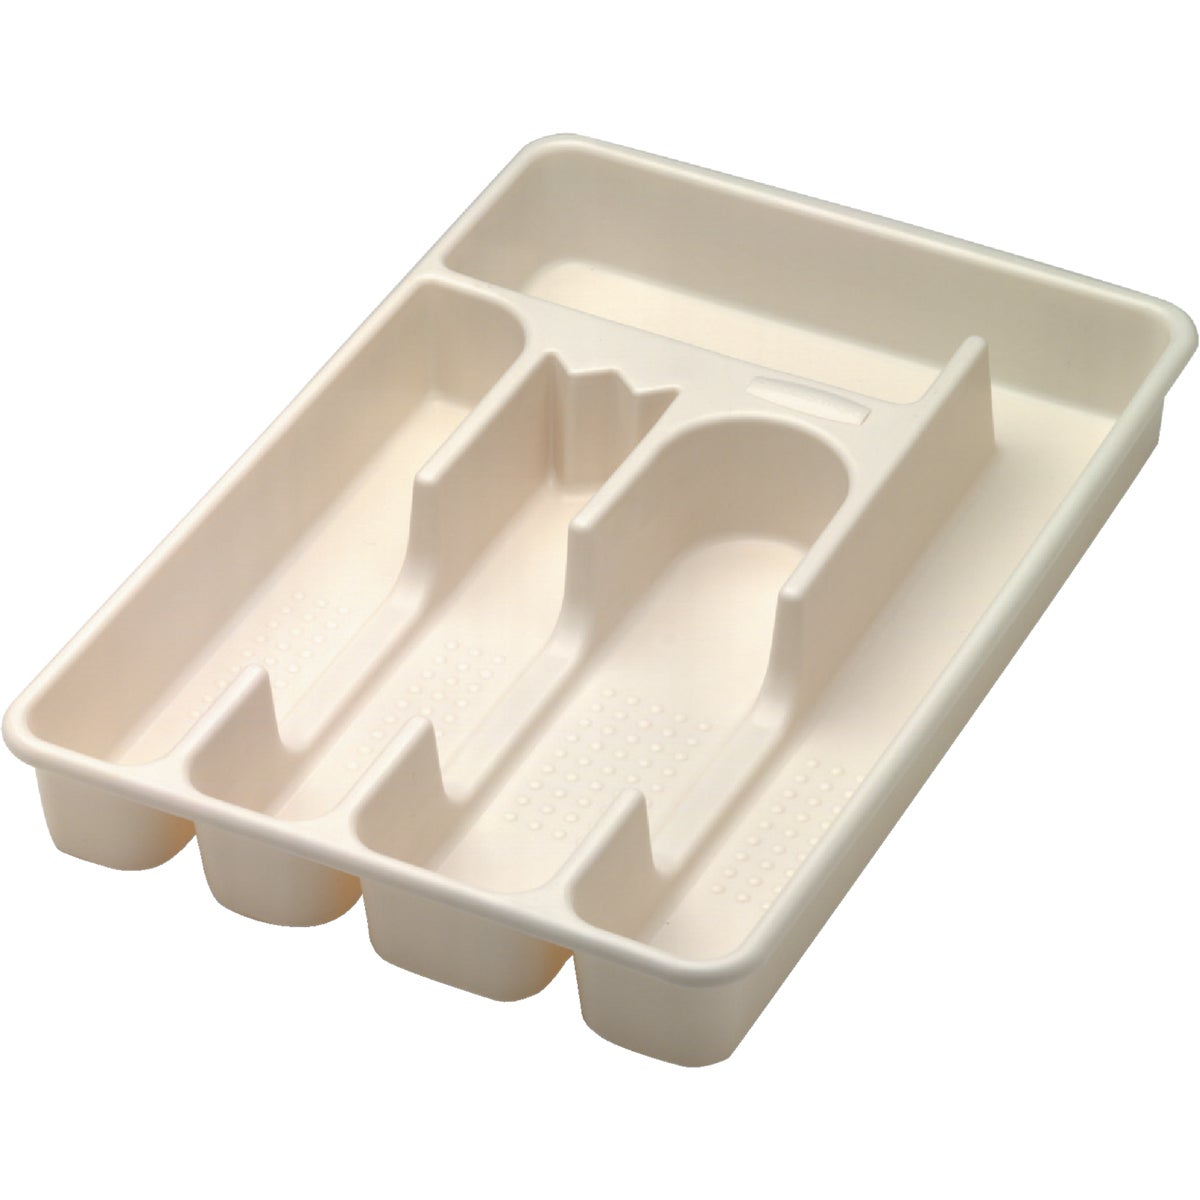 SMALL BSQ CUTLERY TRAY - 2919-RD-BISQU by Rubbermaid Home